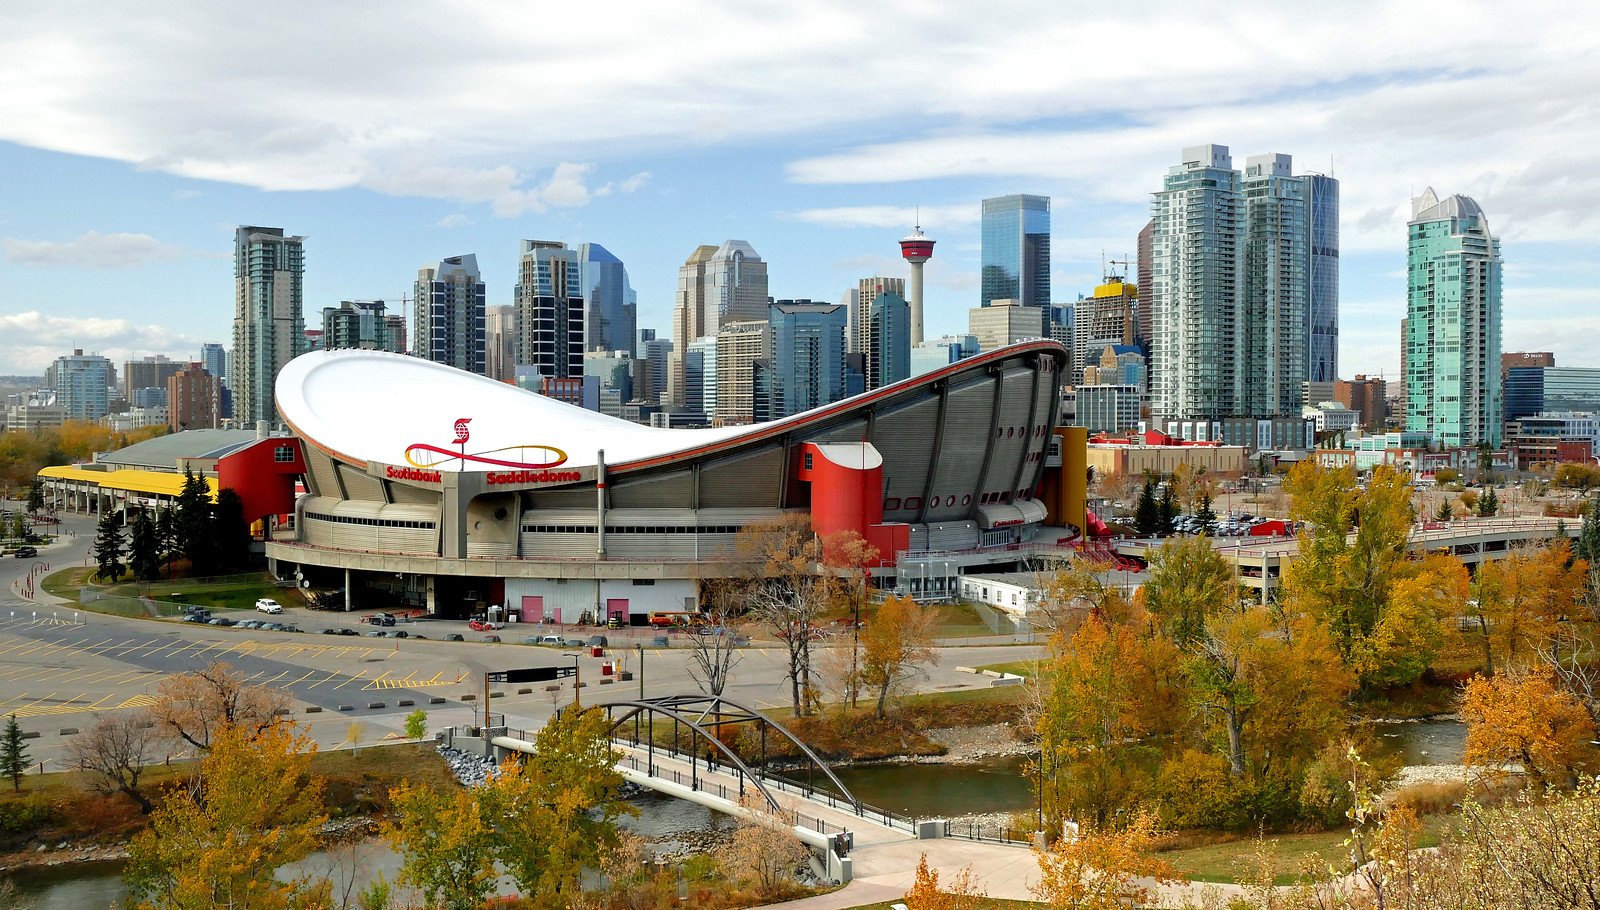 Calgary and Saddledome. Alberta.